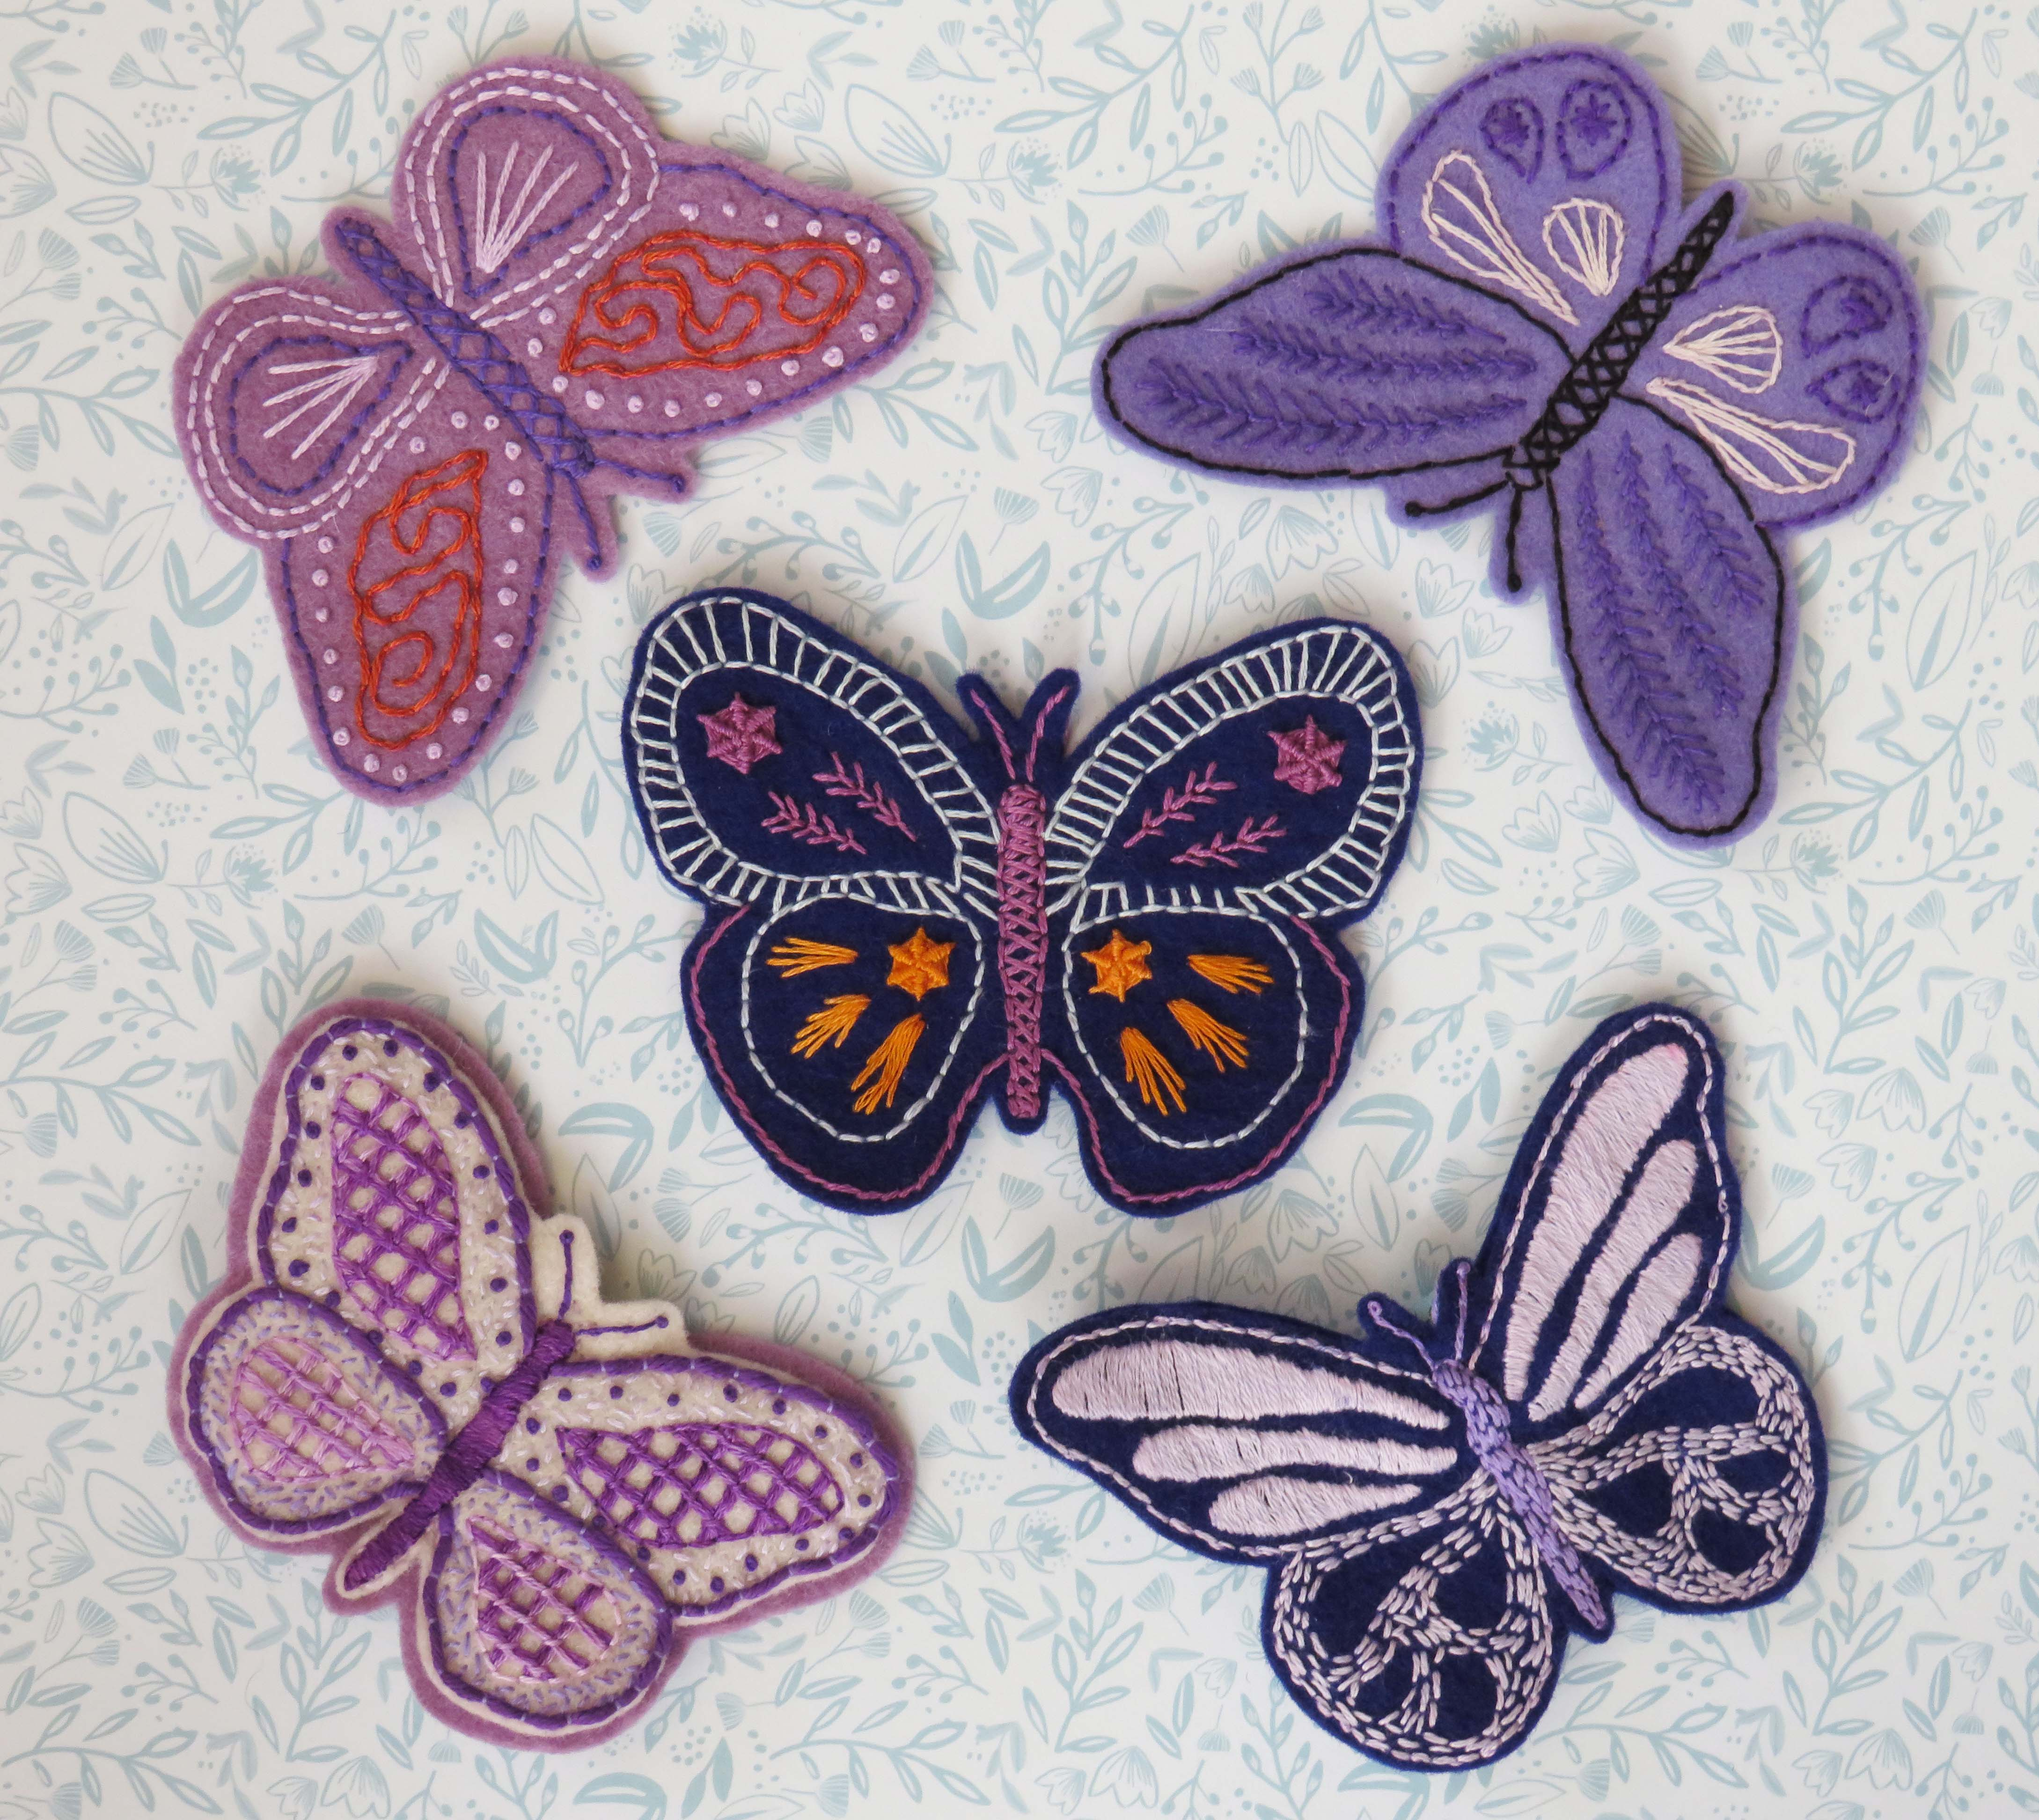 butterfly hand embroidery pattern for fibromyalgia